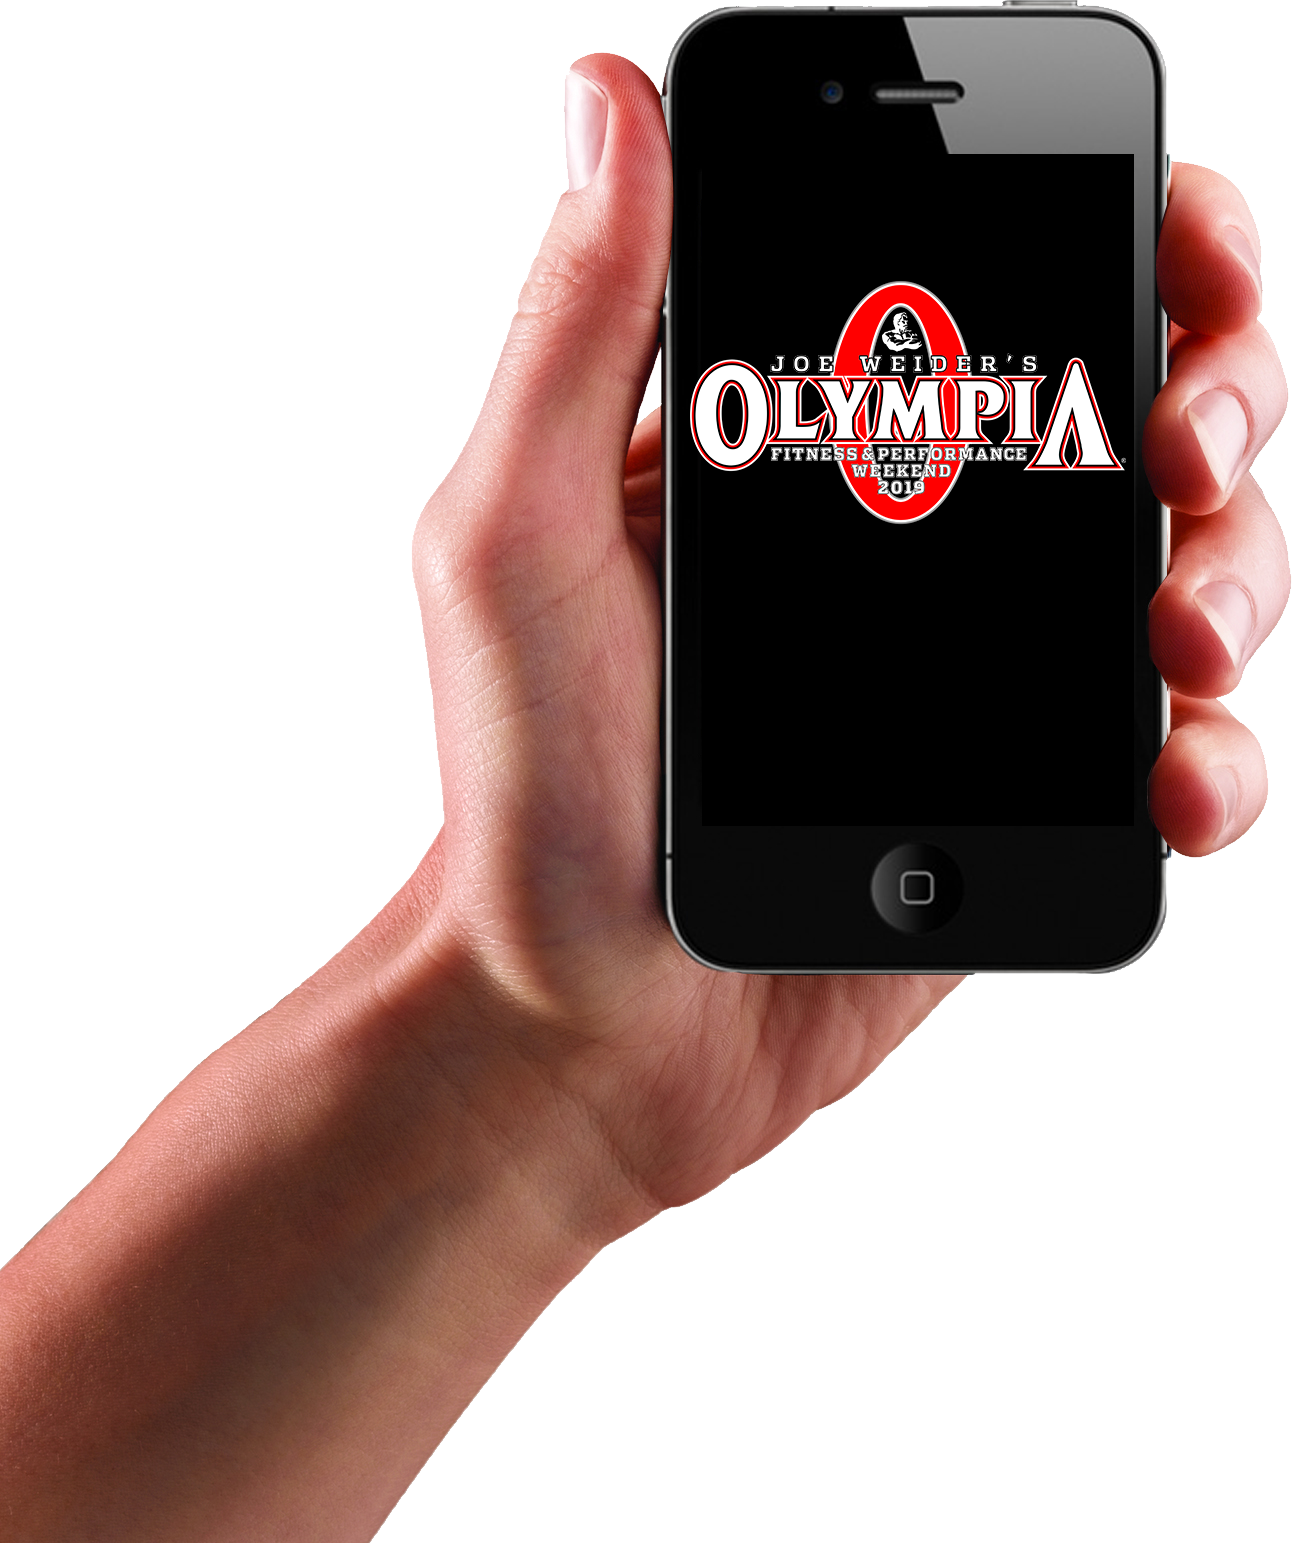 Mr. Olympia mobile app